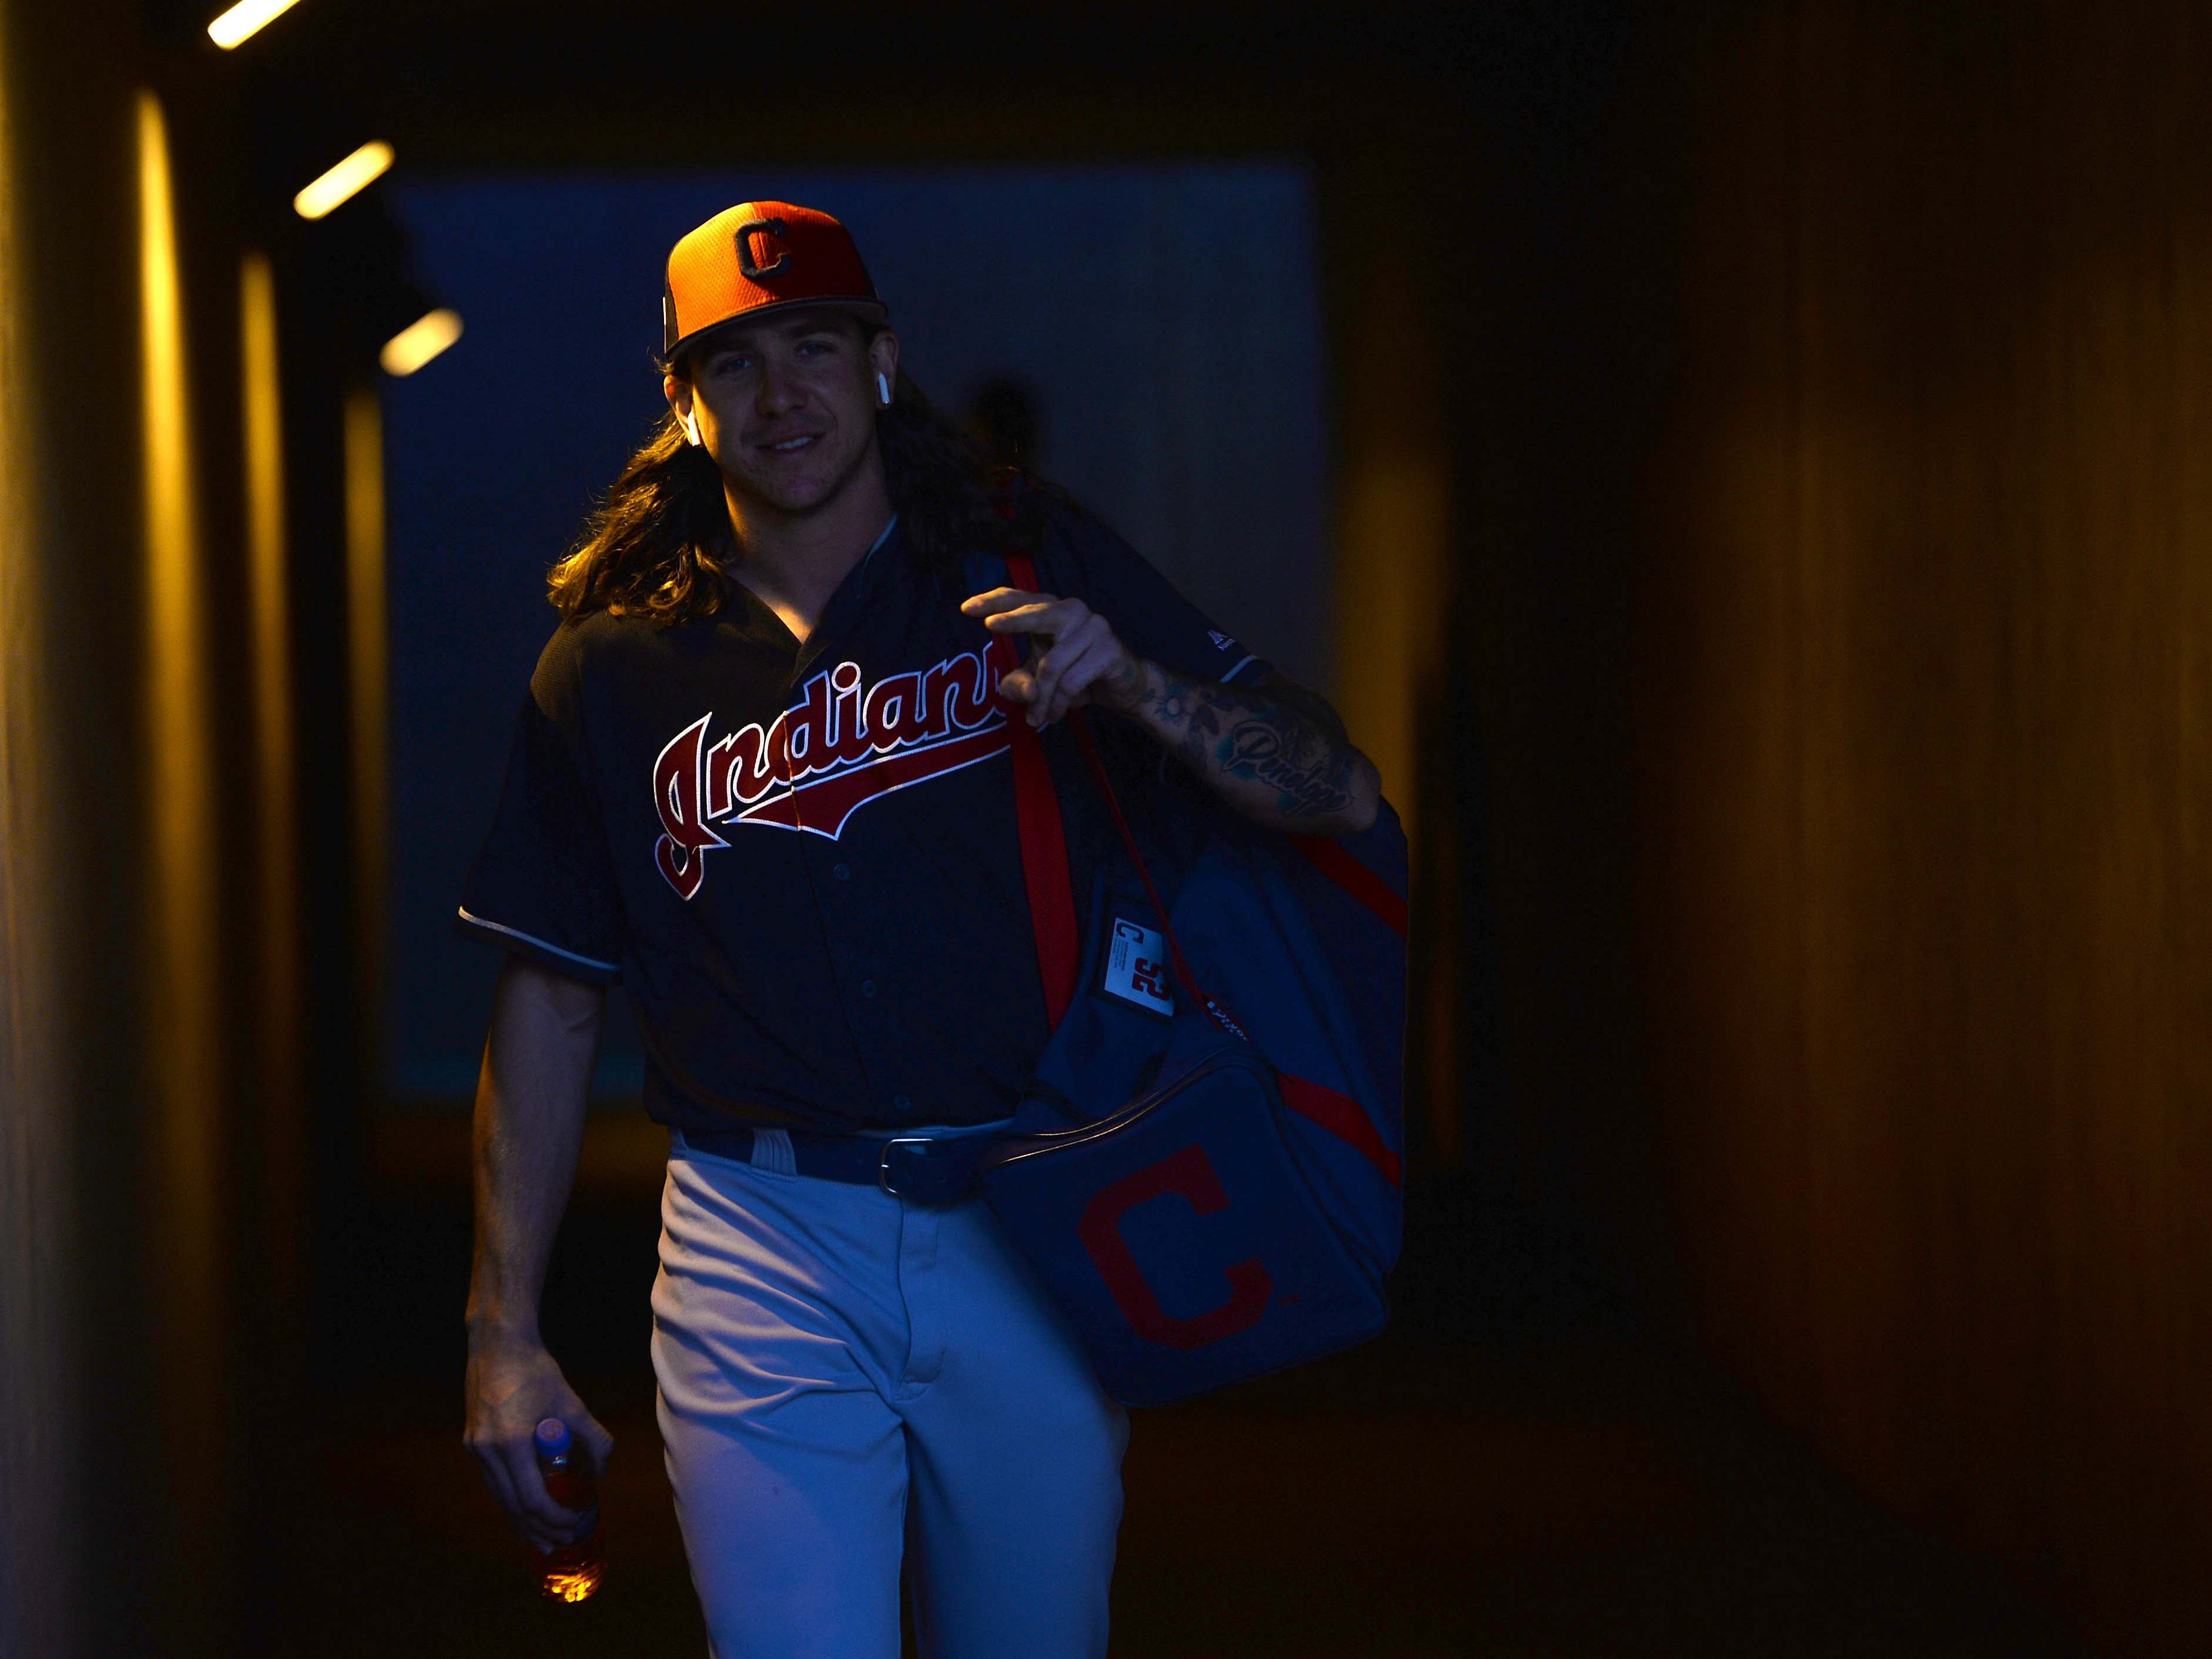 March 6: Indians starting pitcher Mike Clevinger takes the field for warmups.